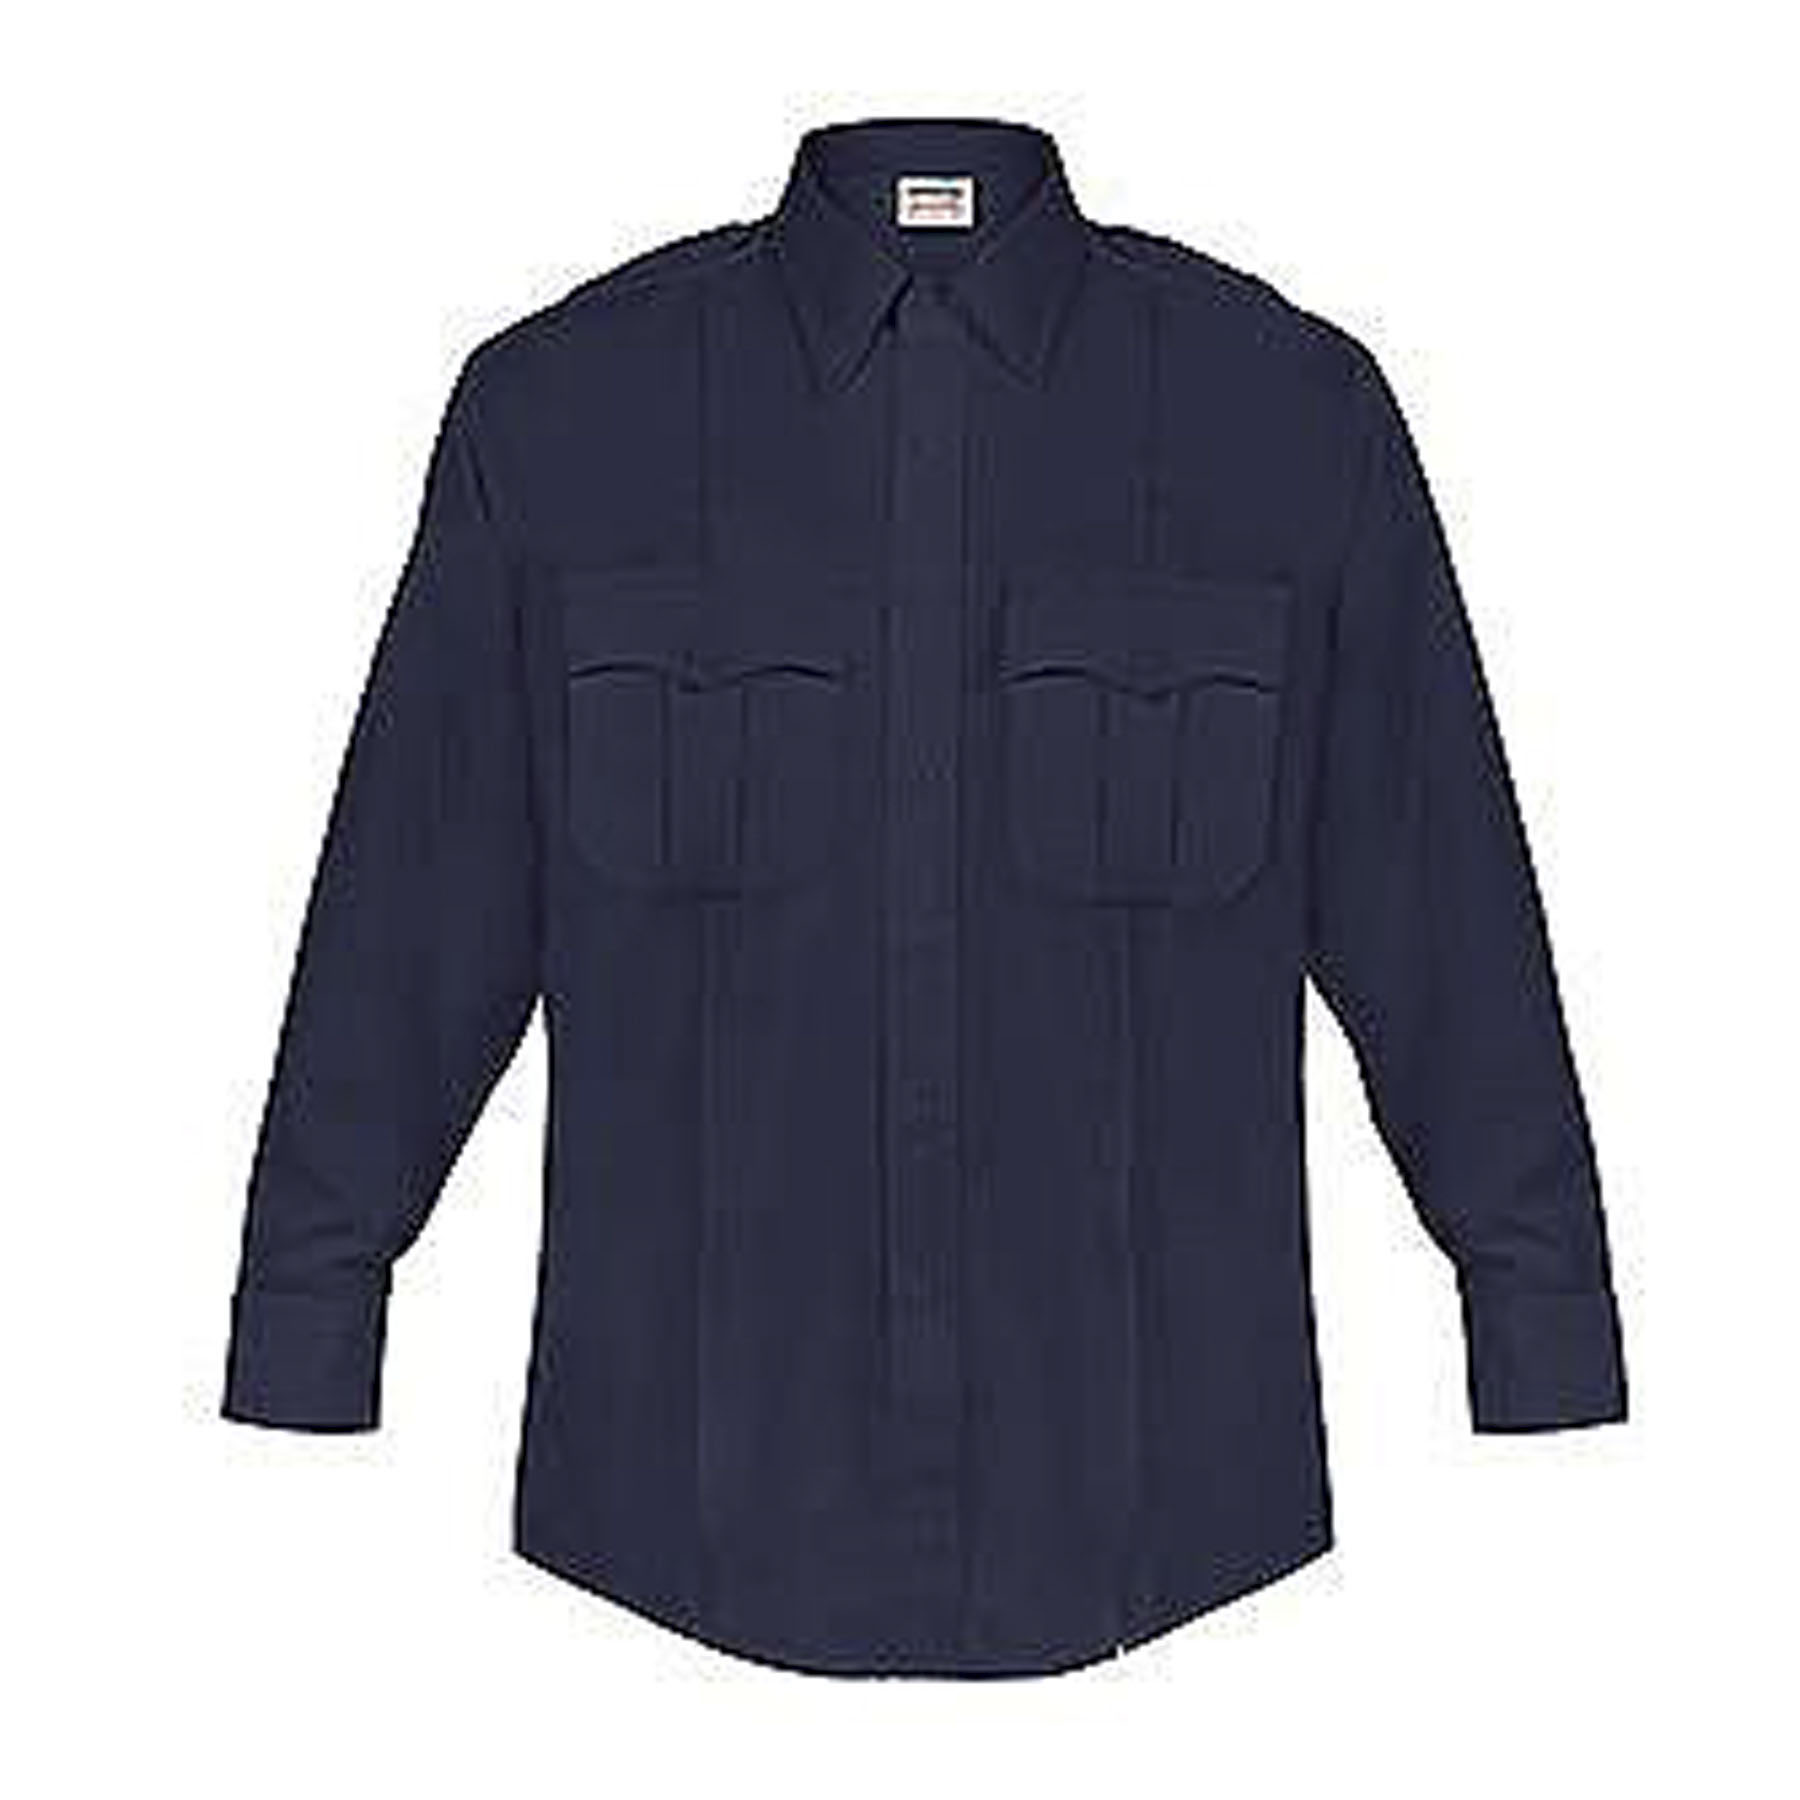 Elbeco DutyMax West Coast Styled Long Sleeve Shirt for Men